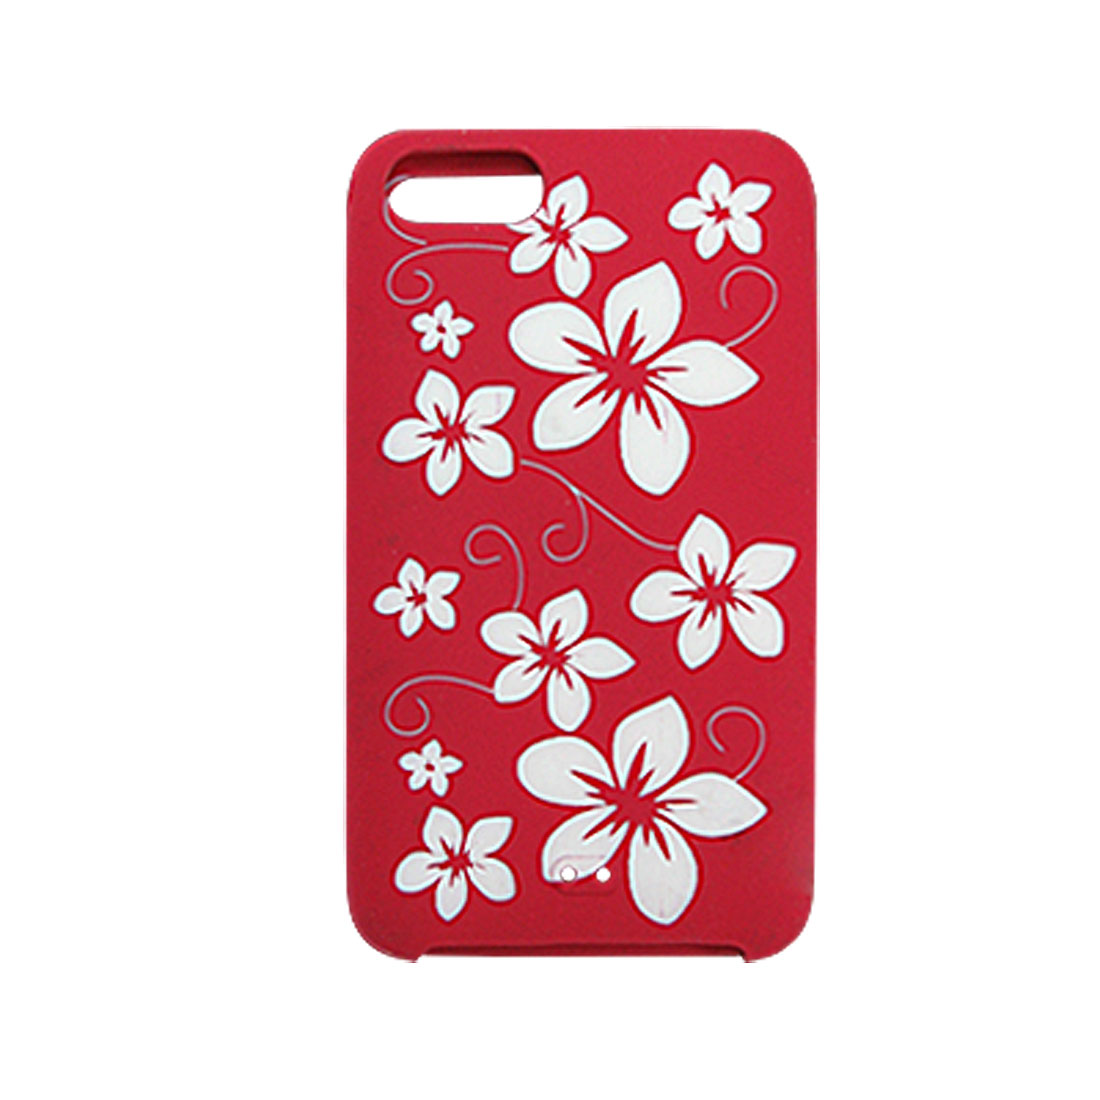 Silicone Skin Red White Case Cover for iPod Touch 2